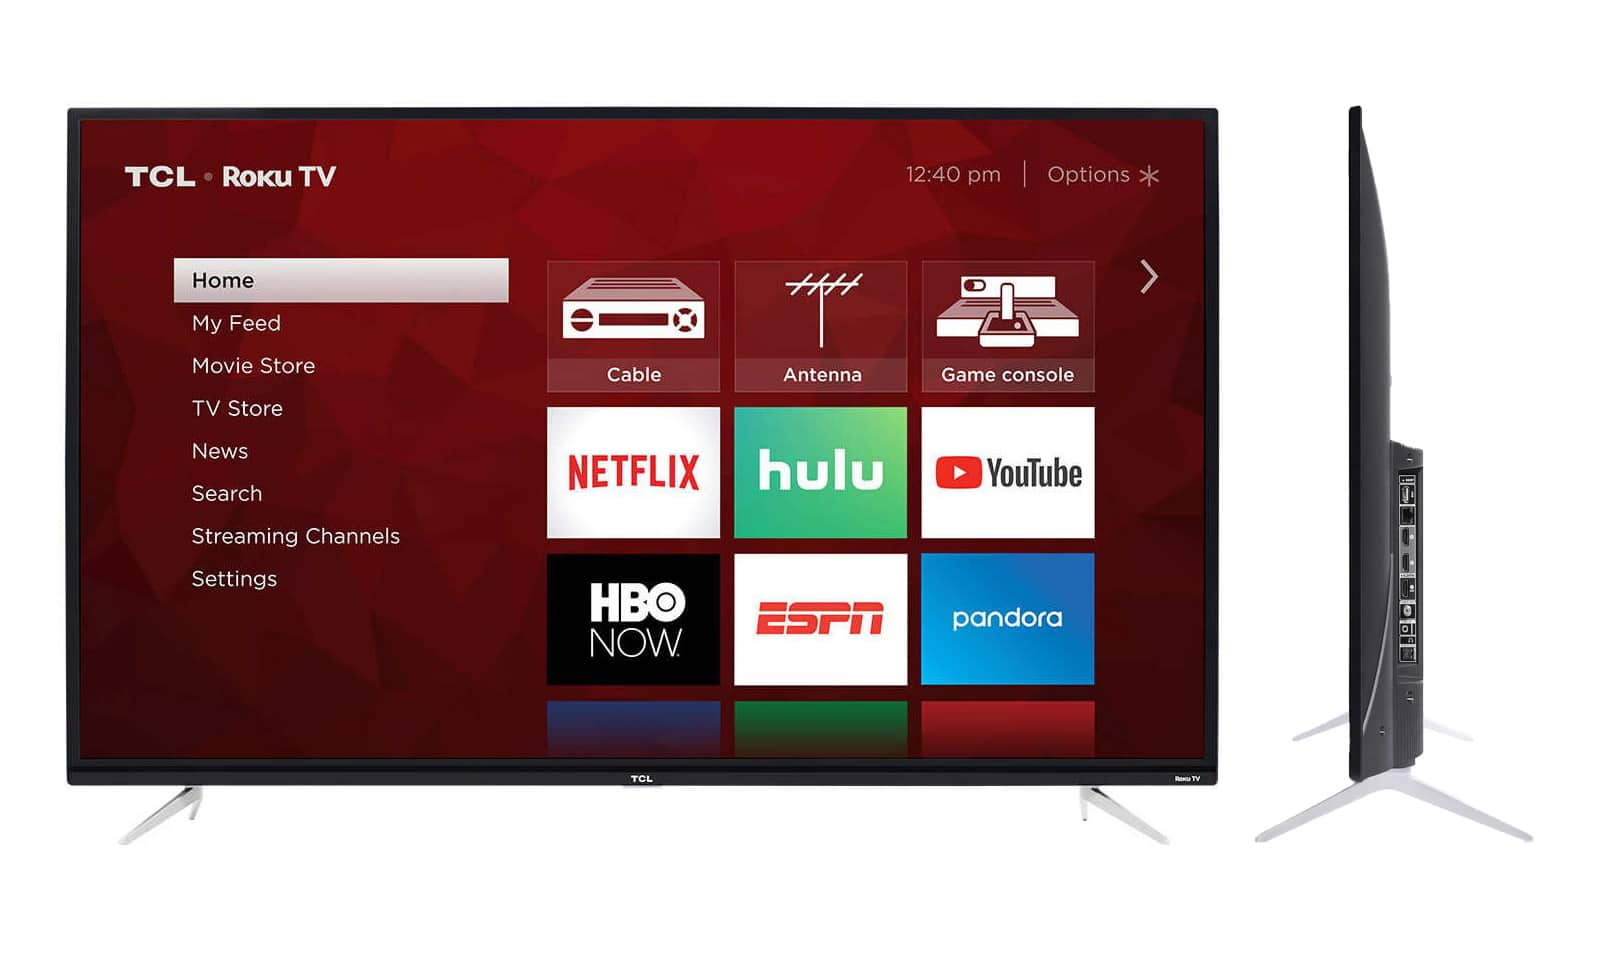 "TCL 43 "" Class 4-Series 4K UHD HDR Roku Smart TV - 43S423 (Refurbished) $189.99 + Free Shipping"